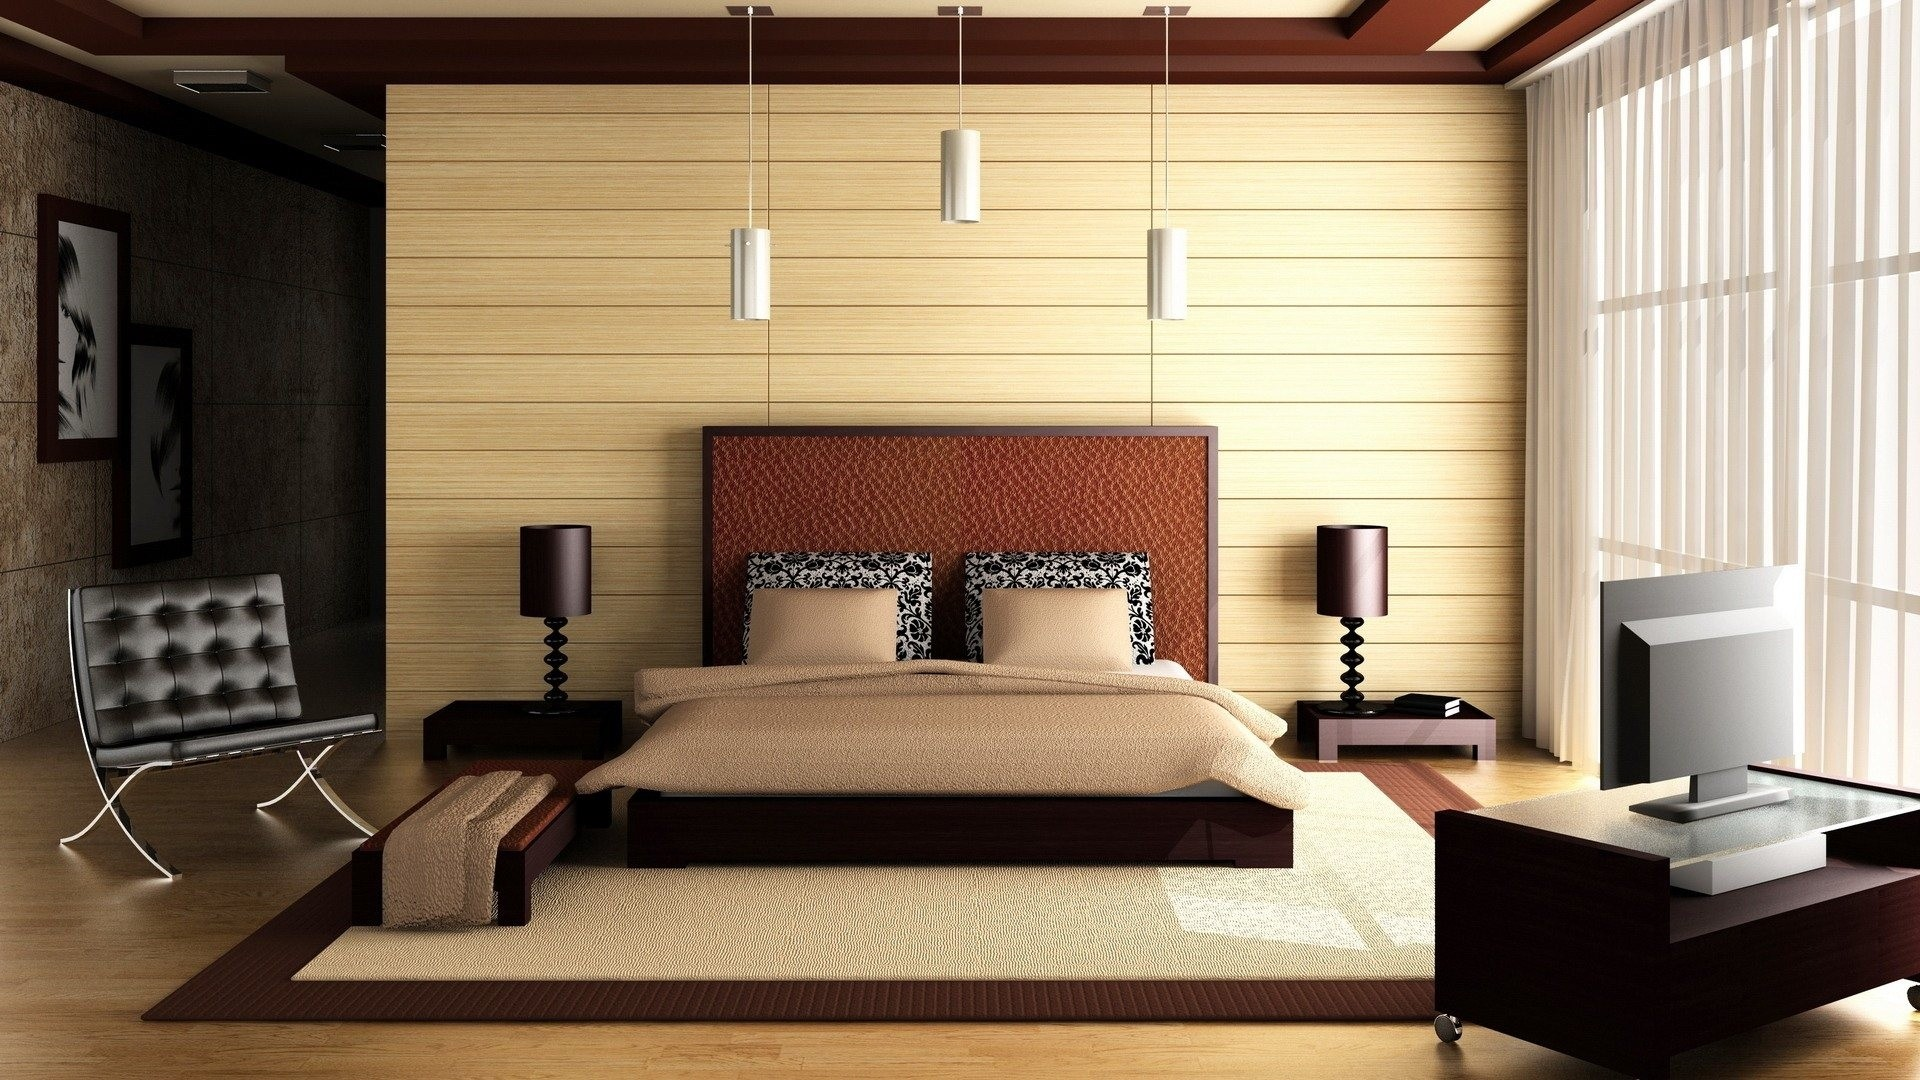 Merveilleux Superb Bedroom Interior Design Wallpapers